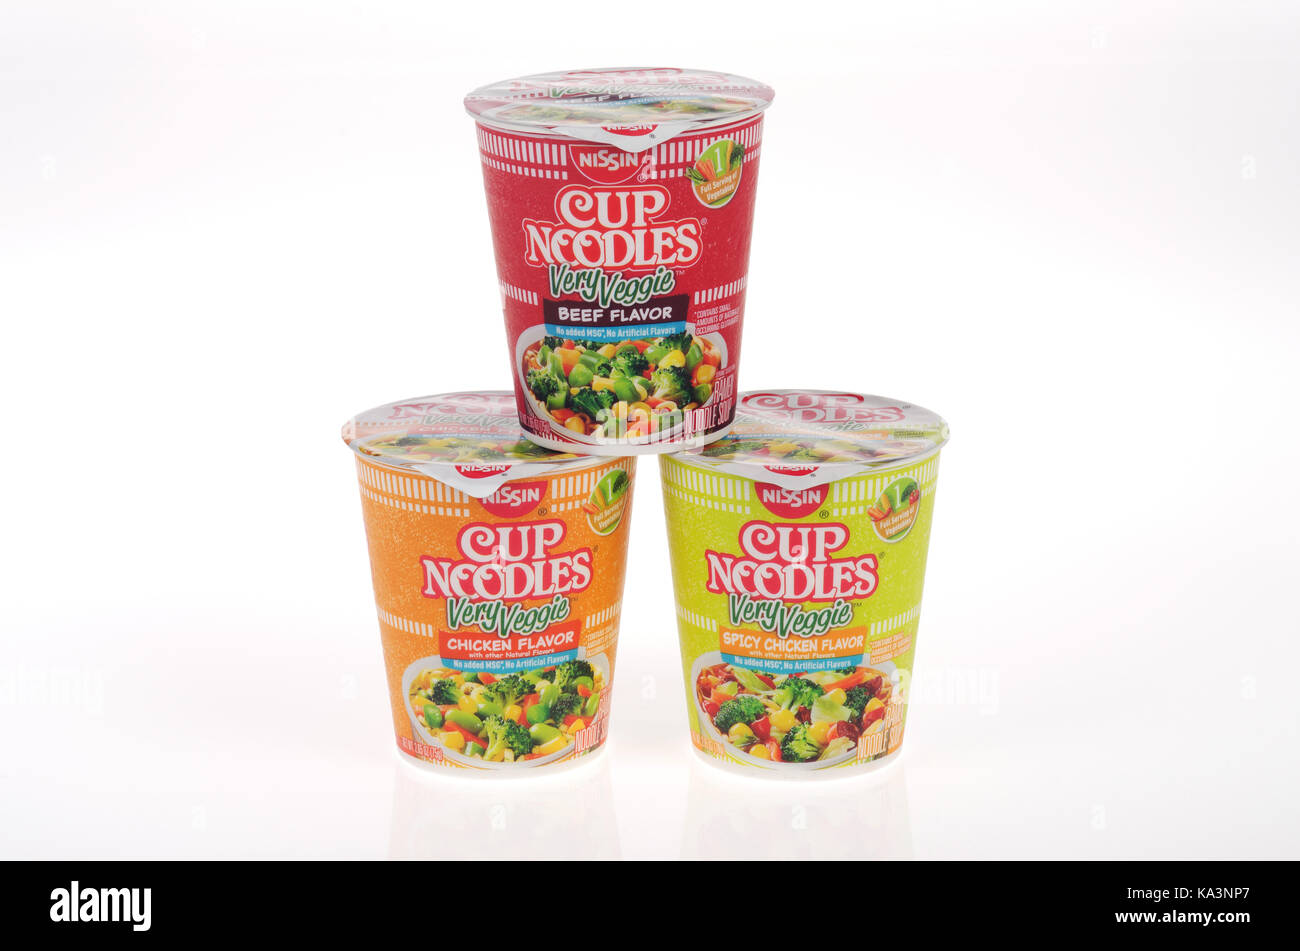 Nissin Cup of Noodles Very Veggie Flavors chicken, spicy chicken and beef in unopened containers stacked on white - Stock Image